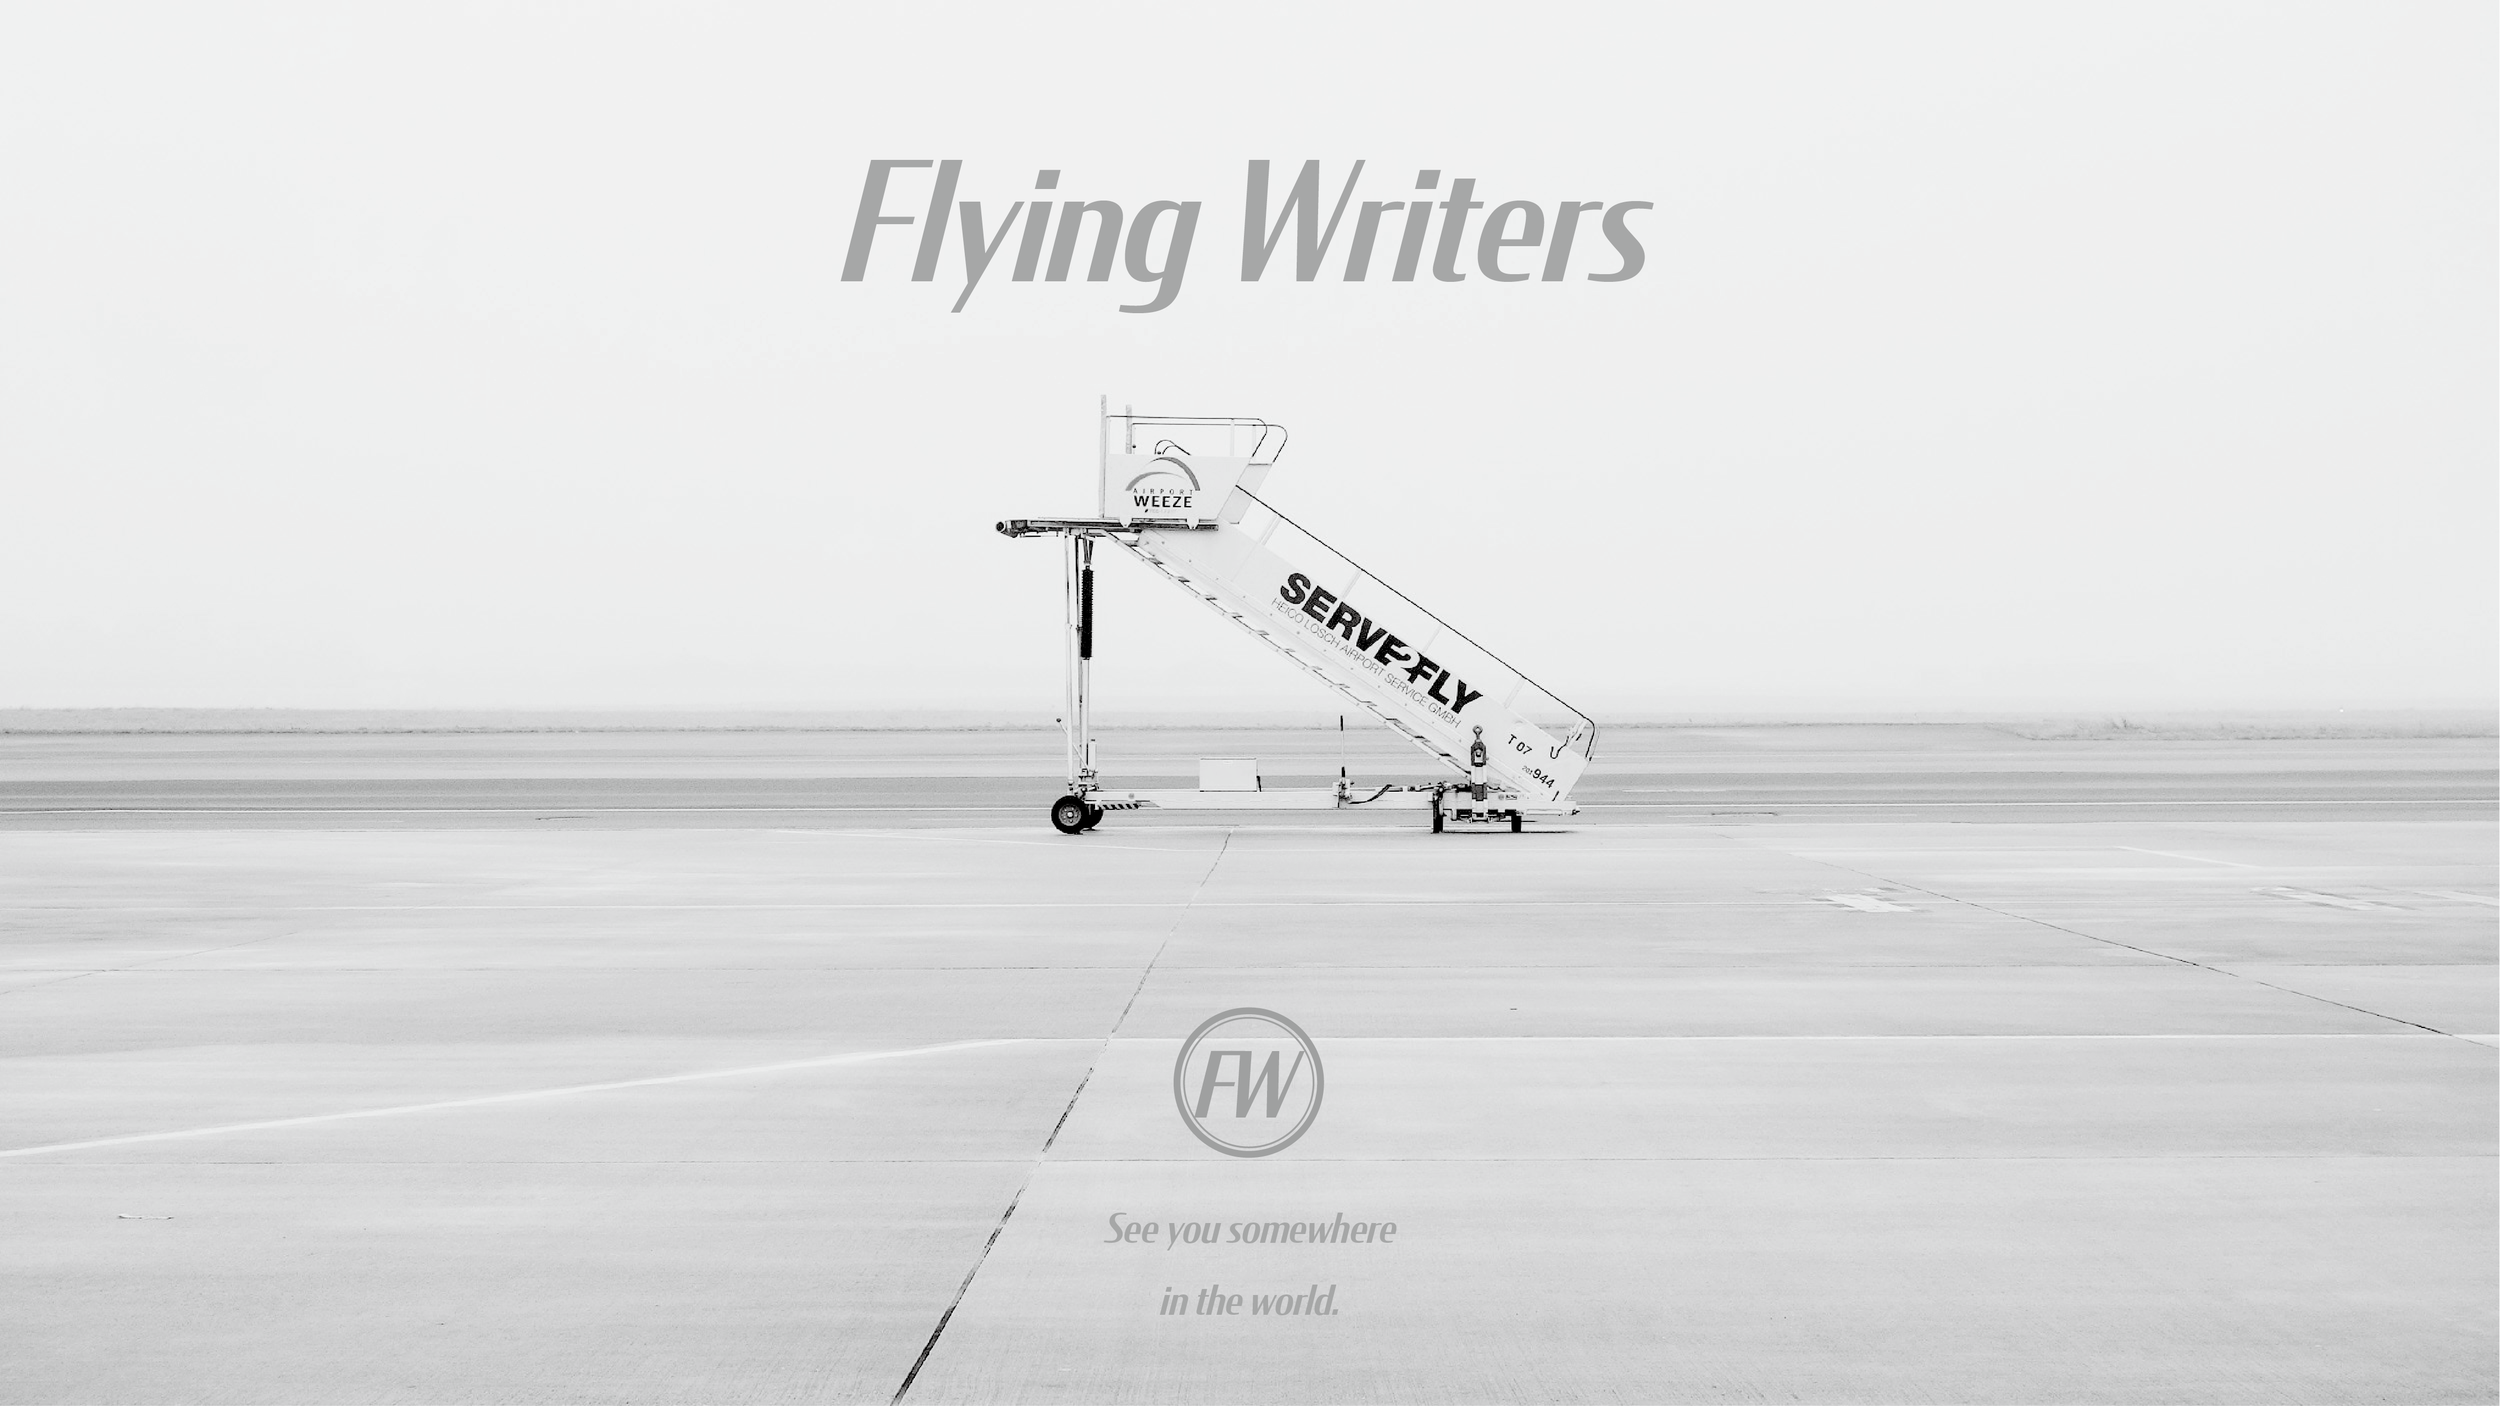 Flying Writers フライヤー